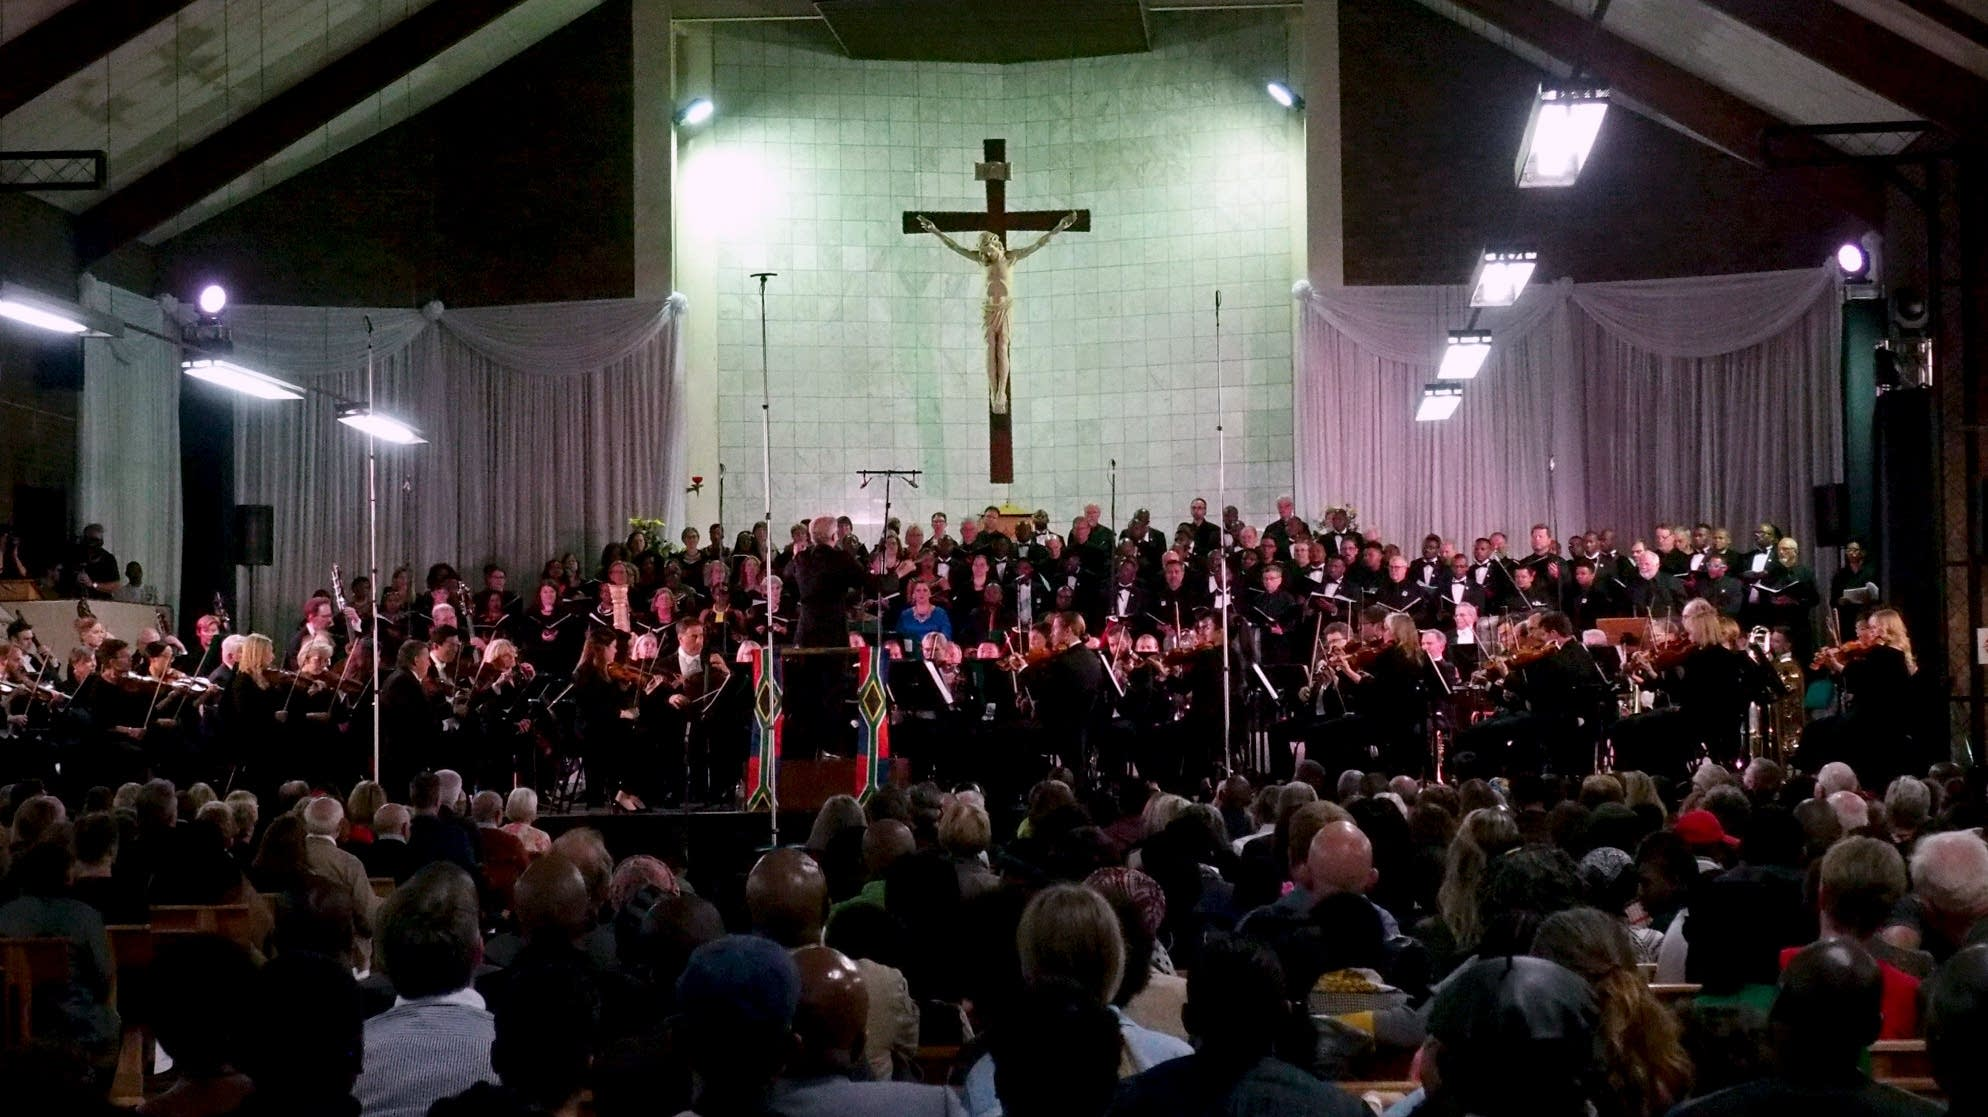 Minnesota Orchestra in South Africa: Soweto concert